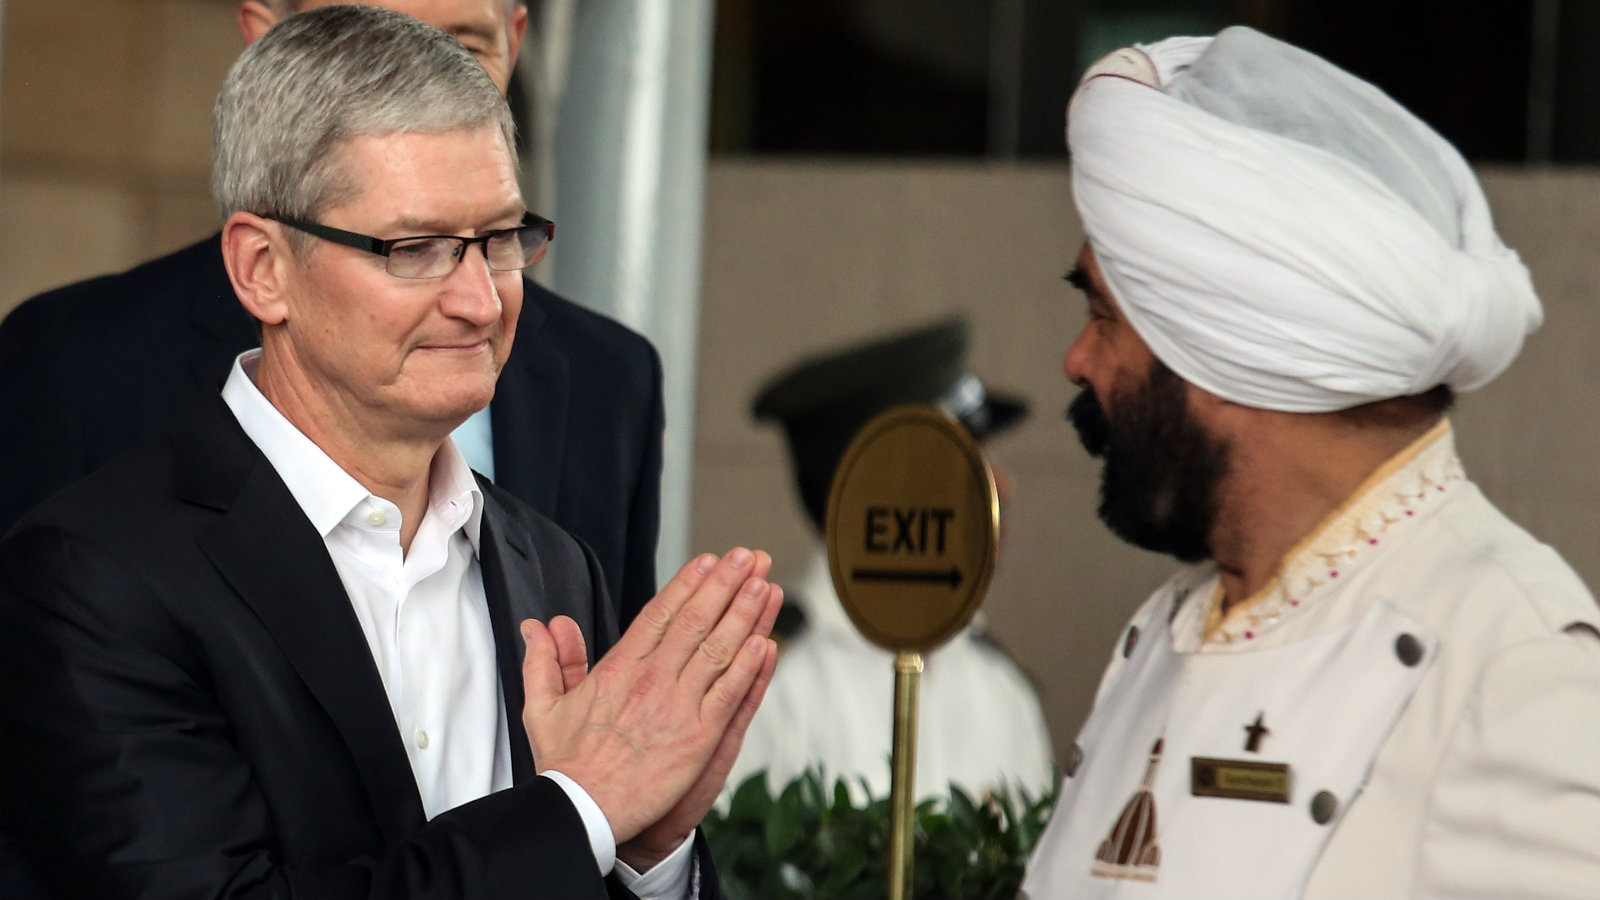 Apple Chief Executive Officer Tim Cook (L) leaves the city hotel in Mumbai, on the first day of his visit to India, 18 May 2016. According to reports Tim Cook is on a four day visit to India during which he will meet with Prime Minister Narendra Modi, Tata Group Chairman Cyrus Mistry and Indian film actor, Shah Rukh Khan.